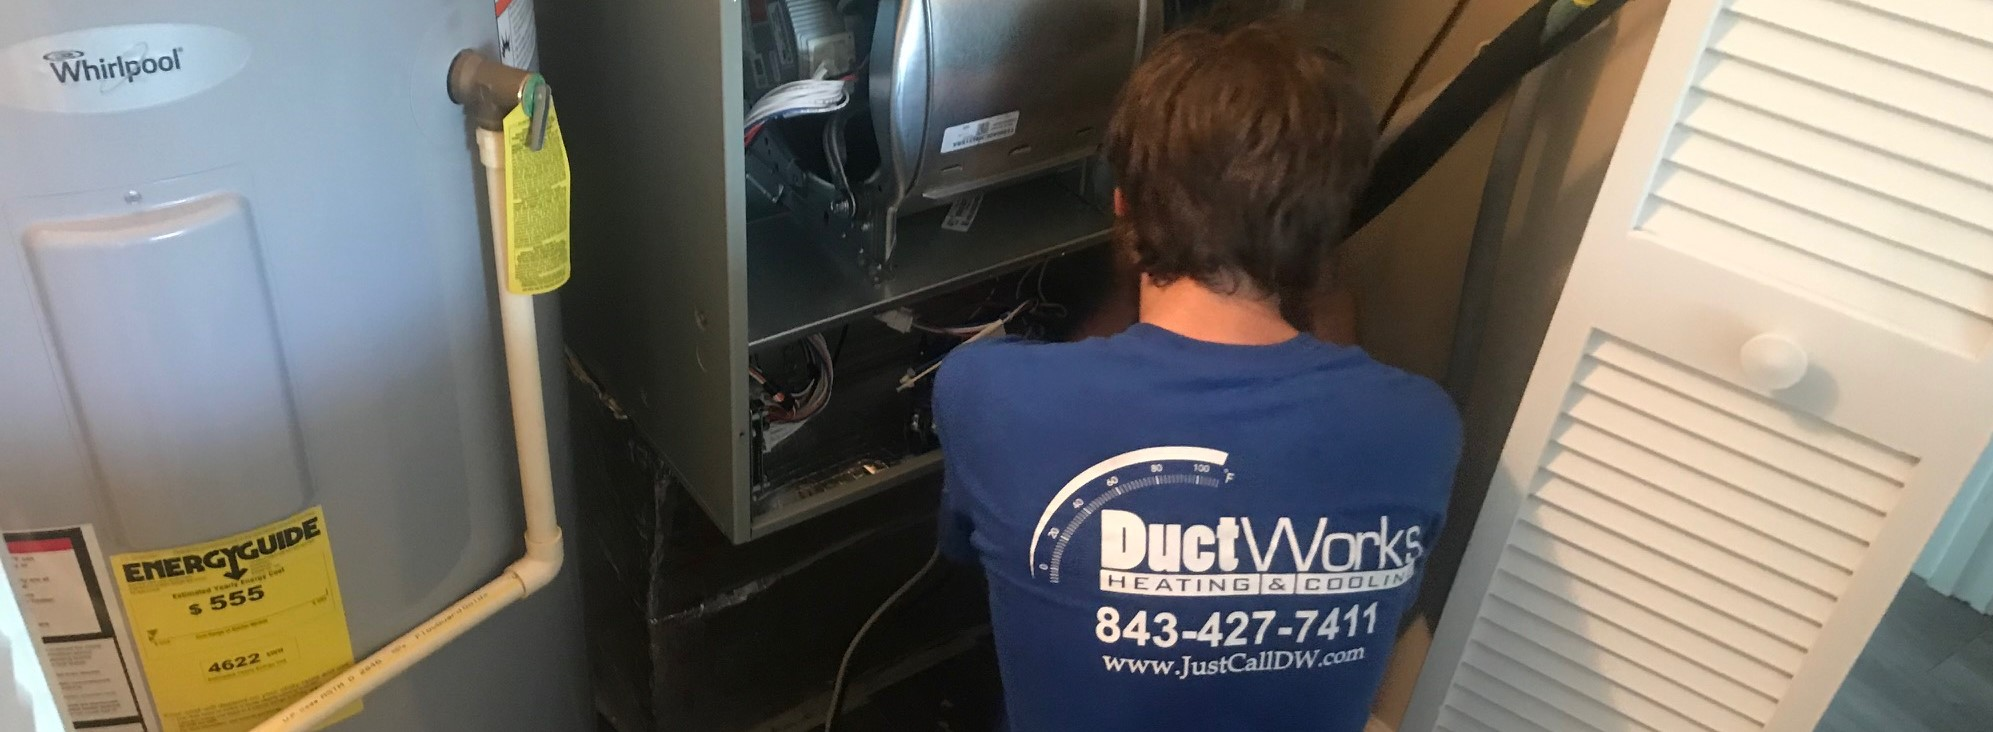 Heat Repair / Installation - Ductworks Heating and Cooling